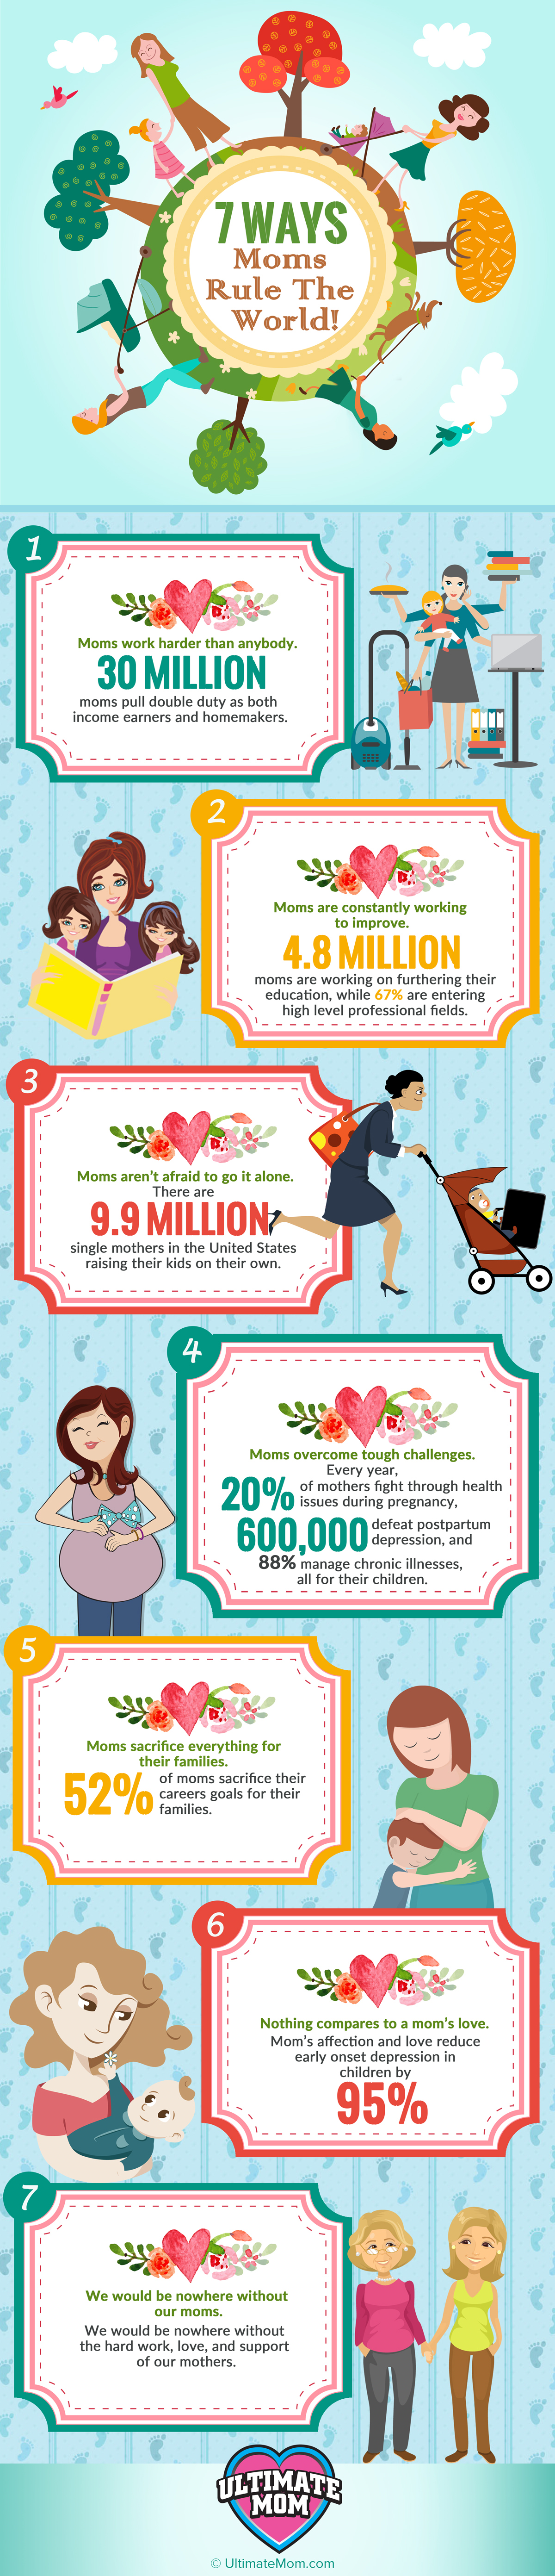 7-Ways-Moms-Rule-The-World_002b_FinalLarge